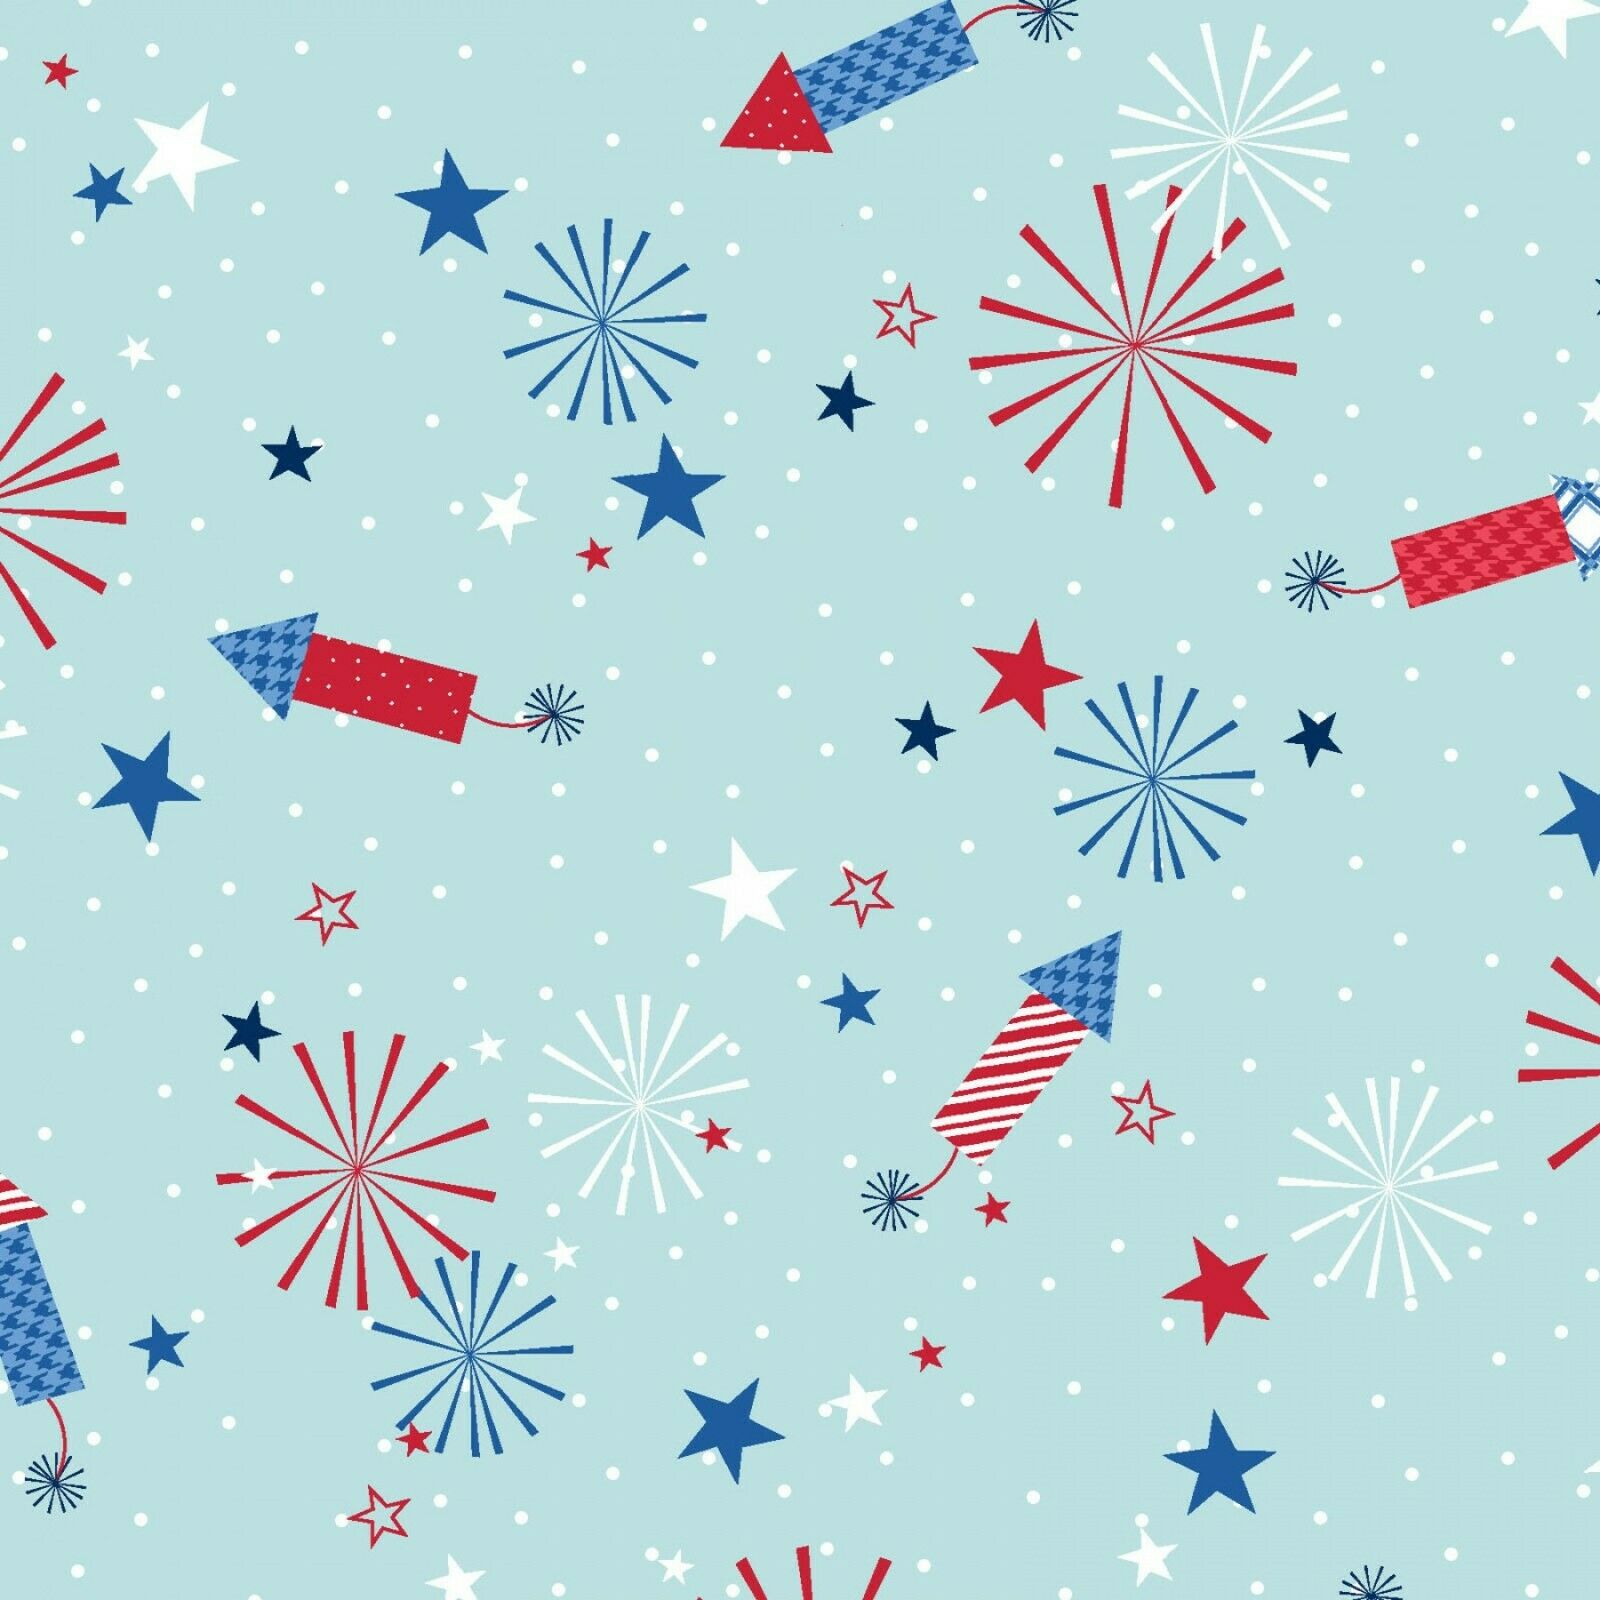 RED WHITE & BLOOM FABRIC COLLECTION Fireworks by Maywood Studio SBY